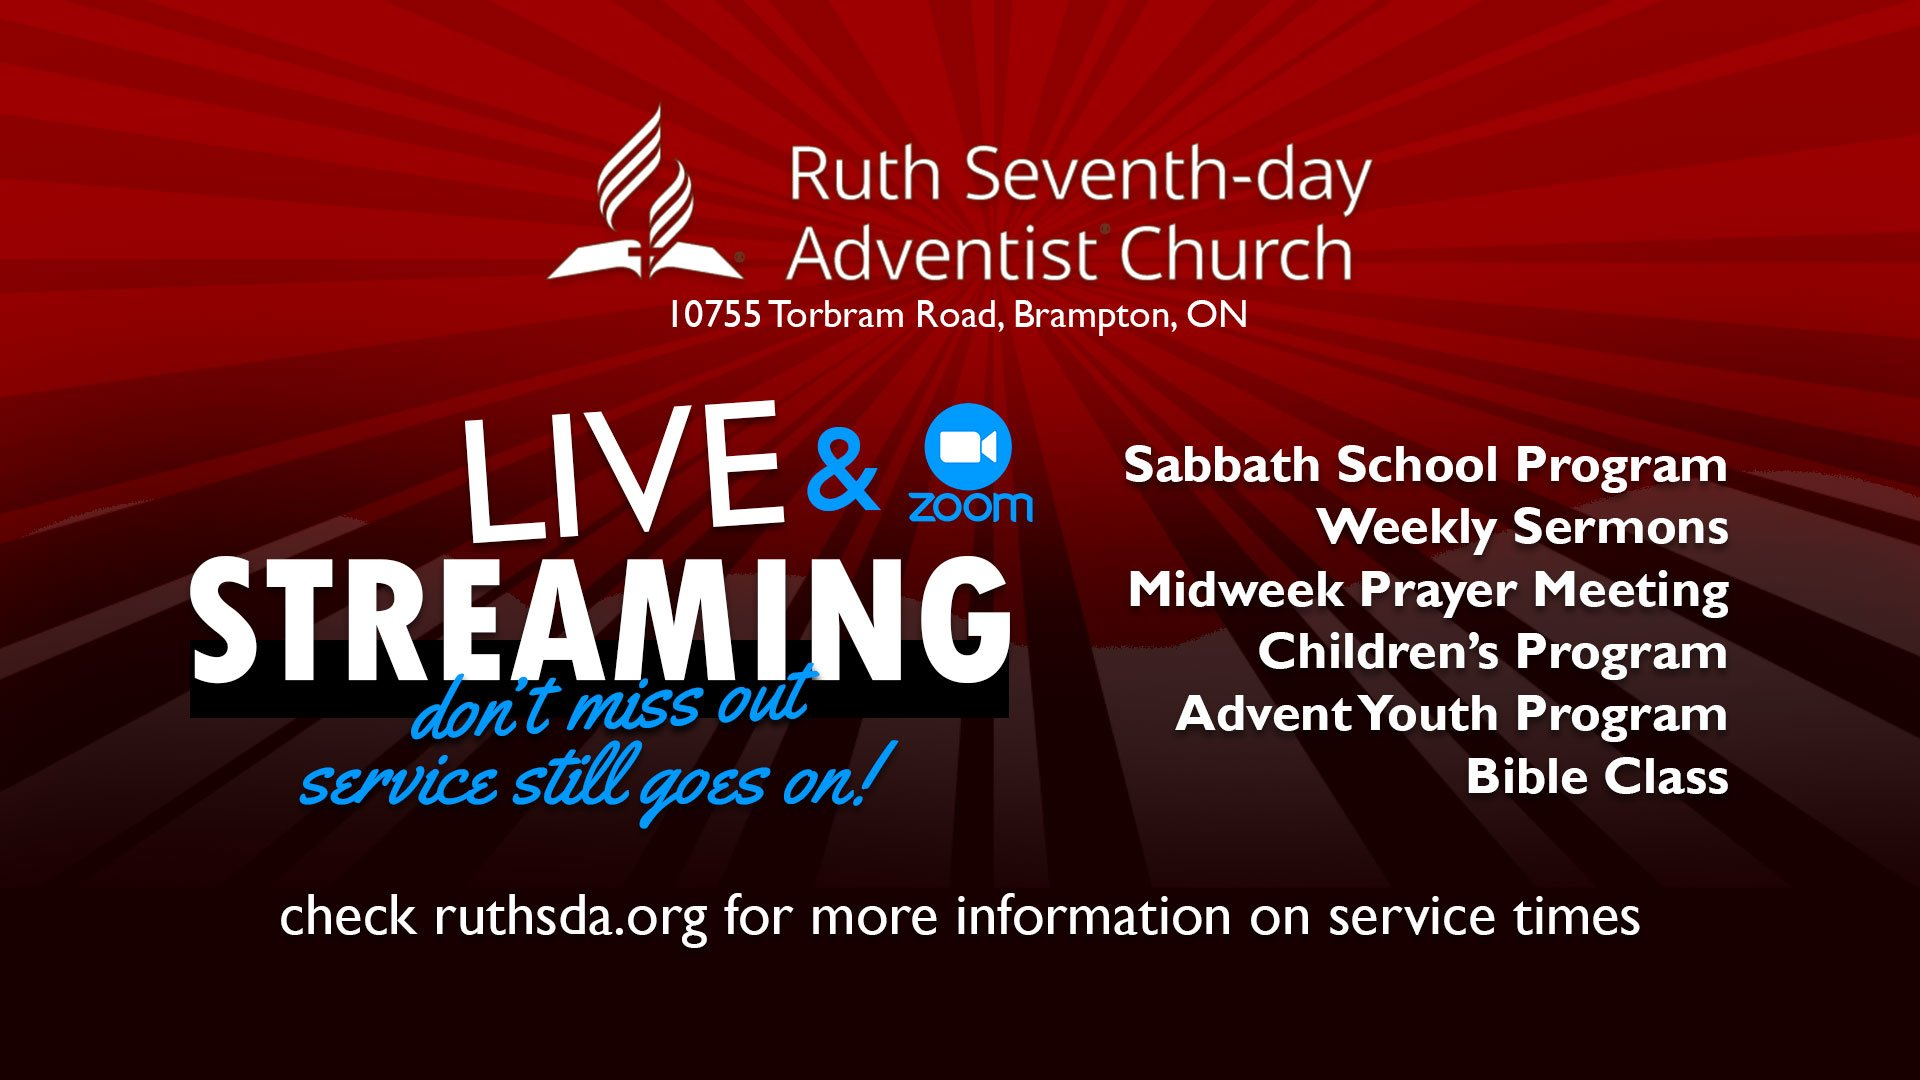 Ruth SDA Streaming flyer